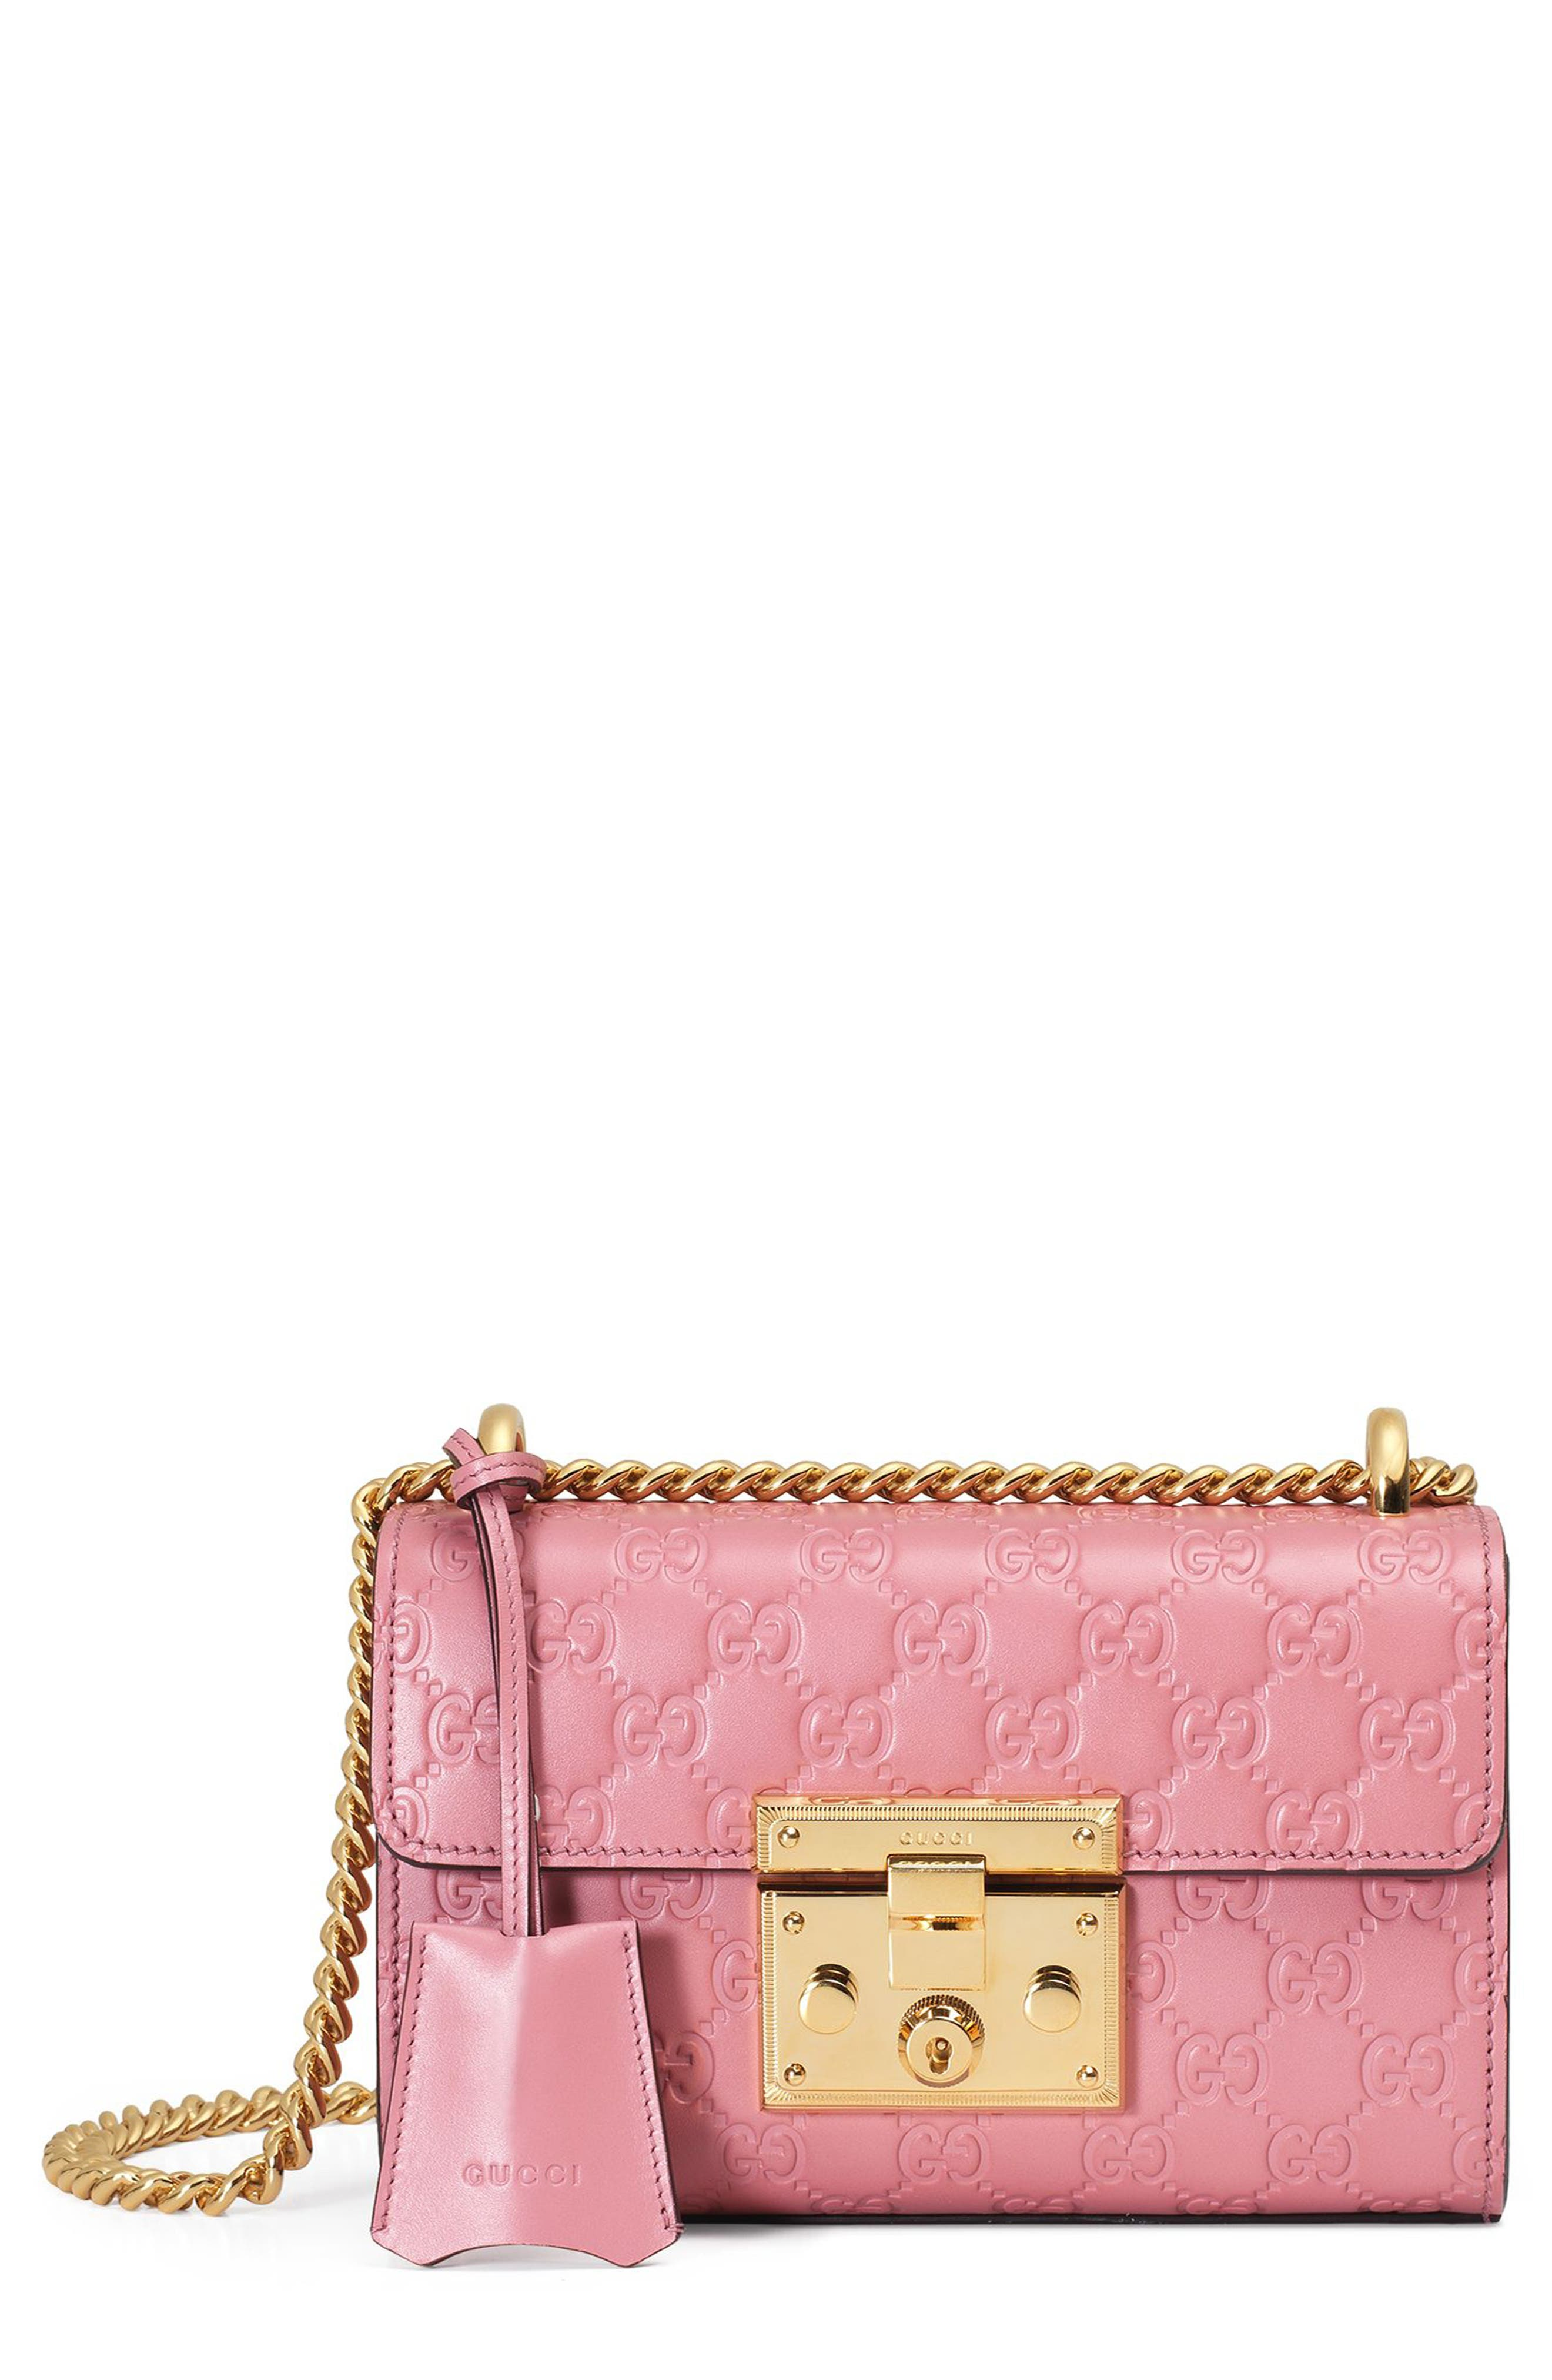 GUCCI Small Padlock Signature Leather Shoulder Bag